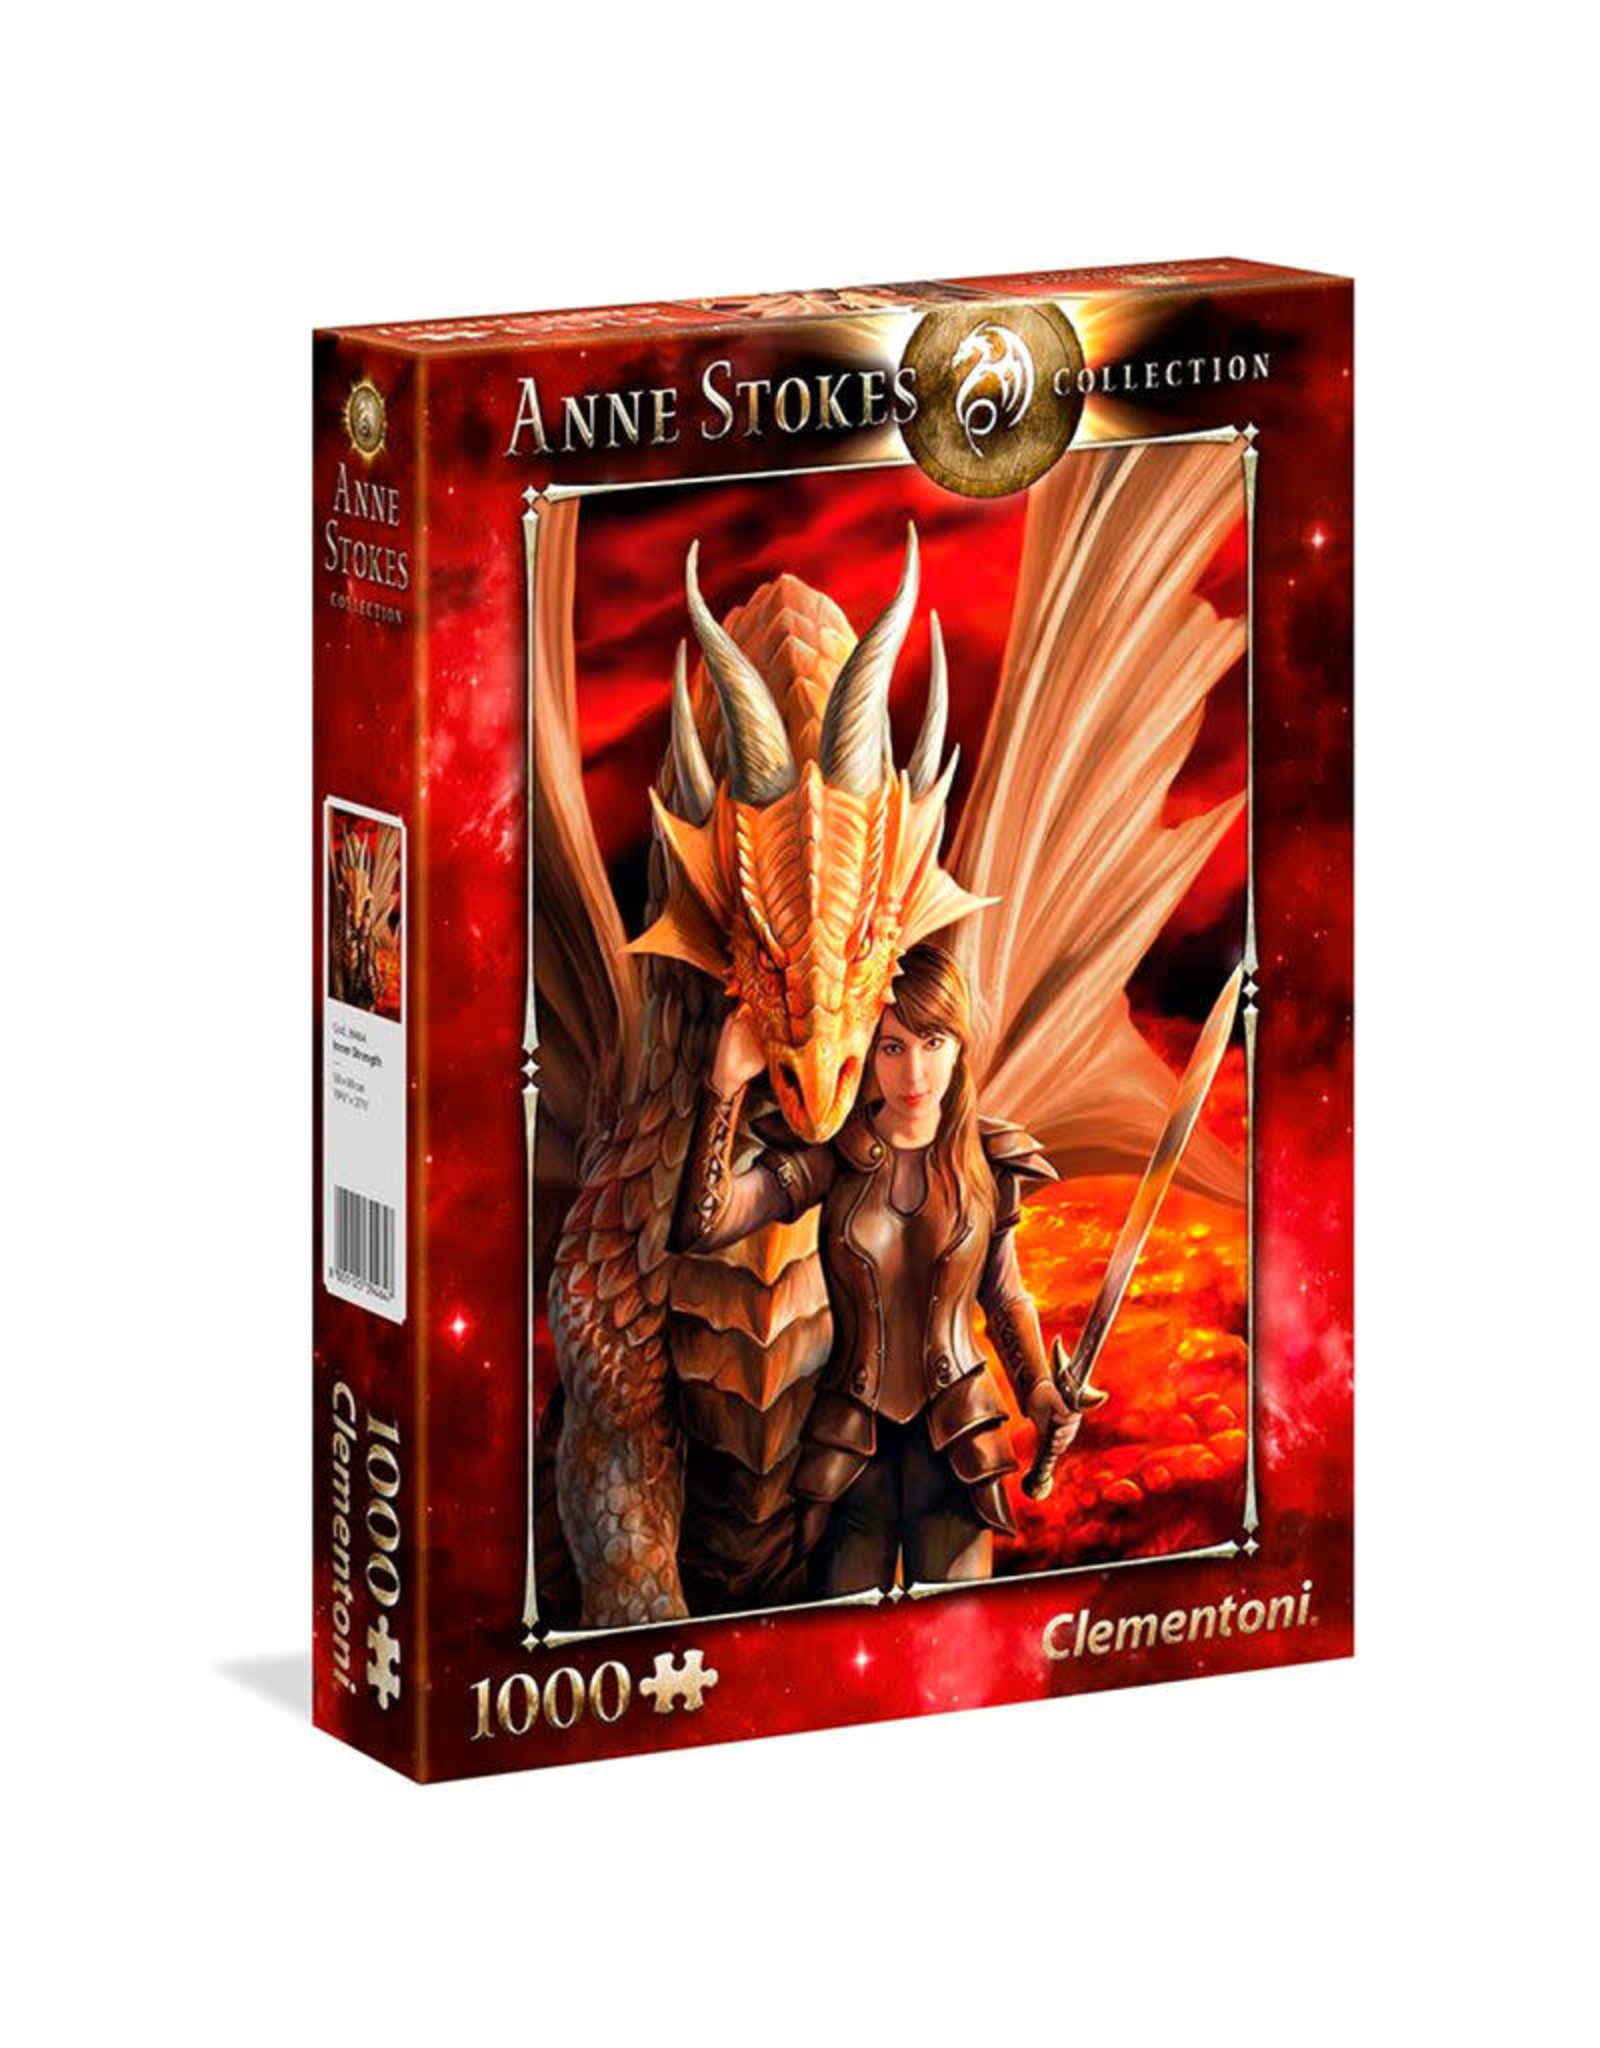 Clementoni ANNE STOKES Puzzle 1000P - Inner Strength